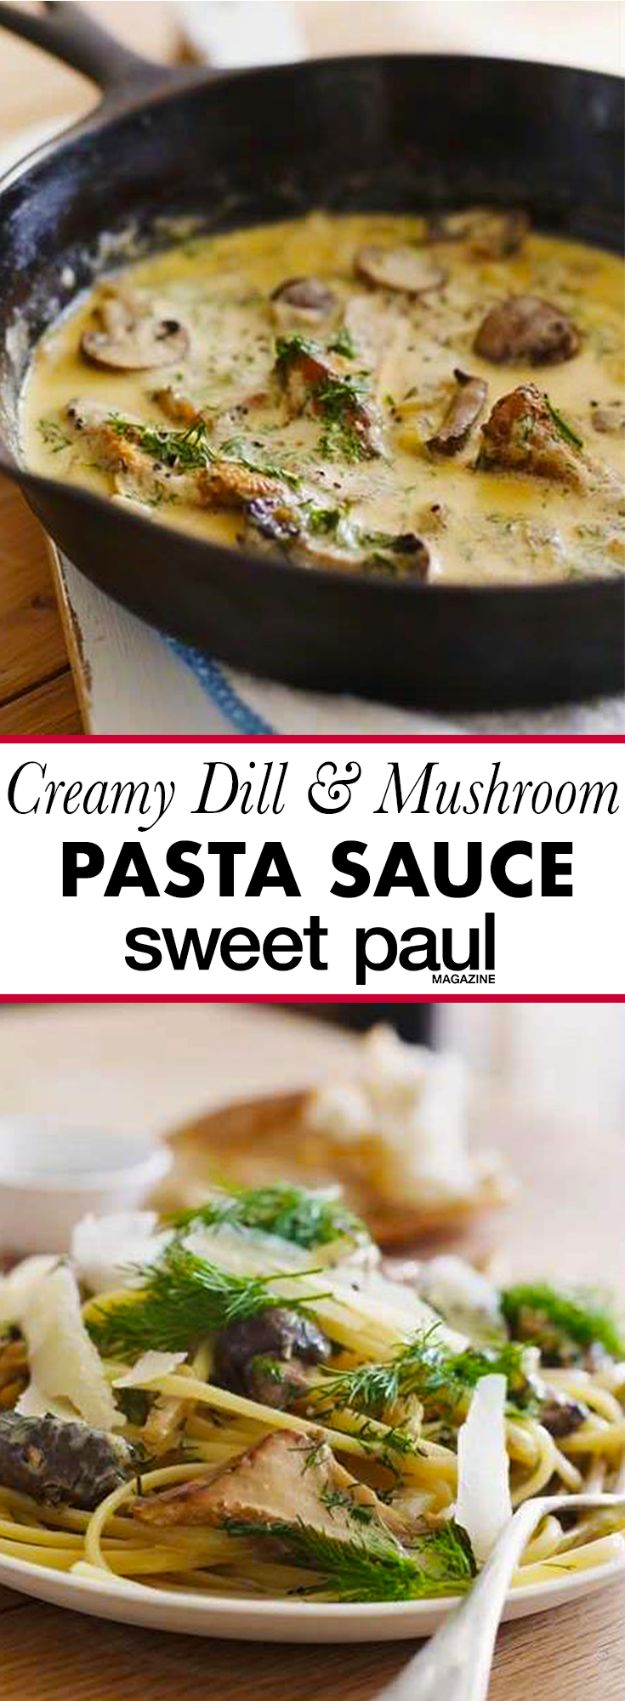 Best Lowfat Recipes - Creamy Mushroom & Dill Pasta - Easy Low fat and Healthy Recipe Ideas For Eating Well and Dieting, Weight Loss - Quick Breakfasts, Lunch, Dinner, Snack and Desserts - Foods with Chicken, Vegetables, Salad, Low Carb, Beef, Egg, Gluten Free http://diyjoy.com/best-lowfat-recipes